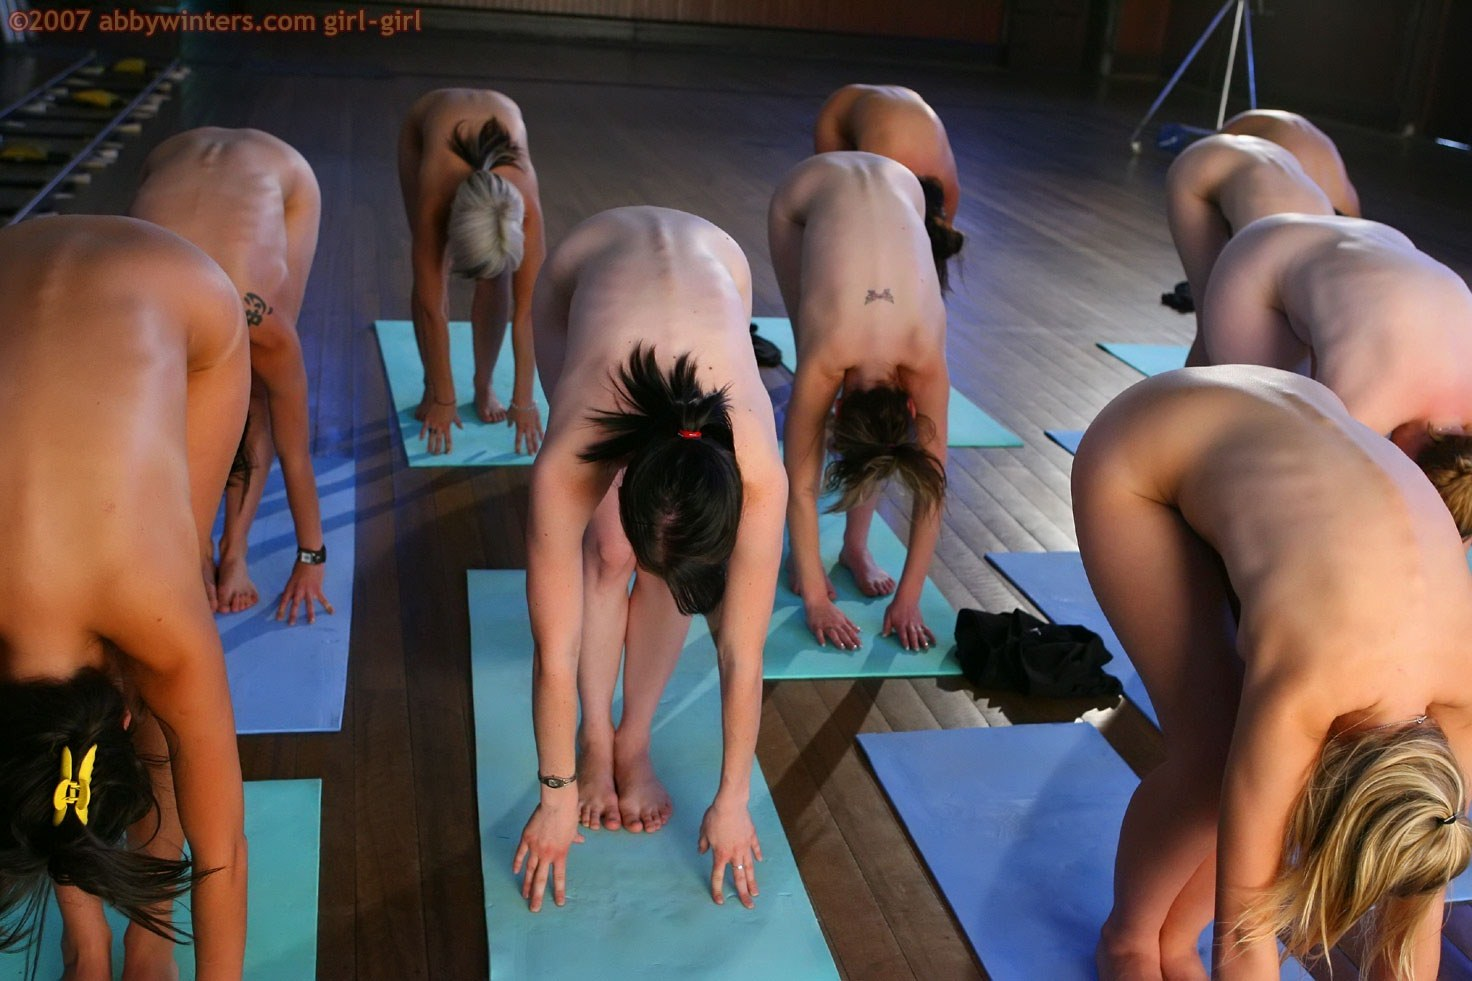 Abby winters yoga girls naked have hit